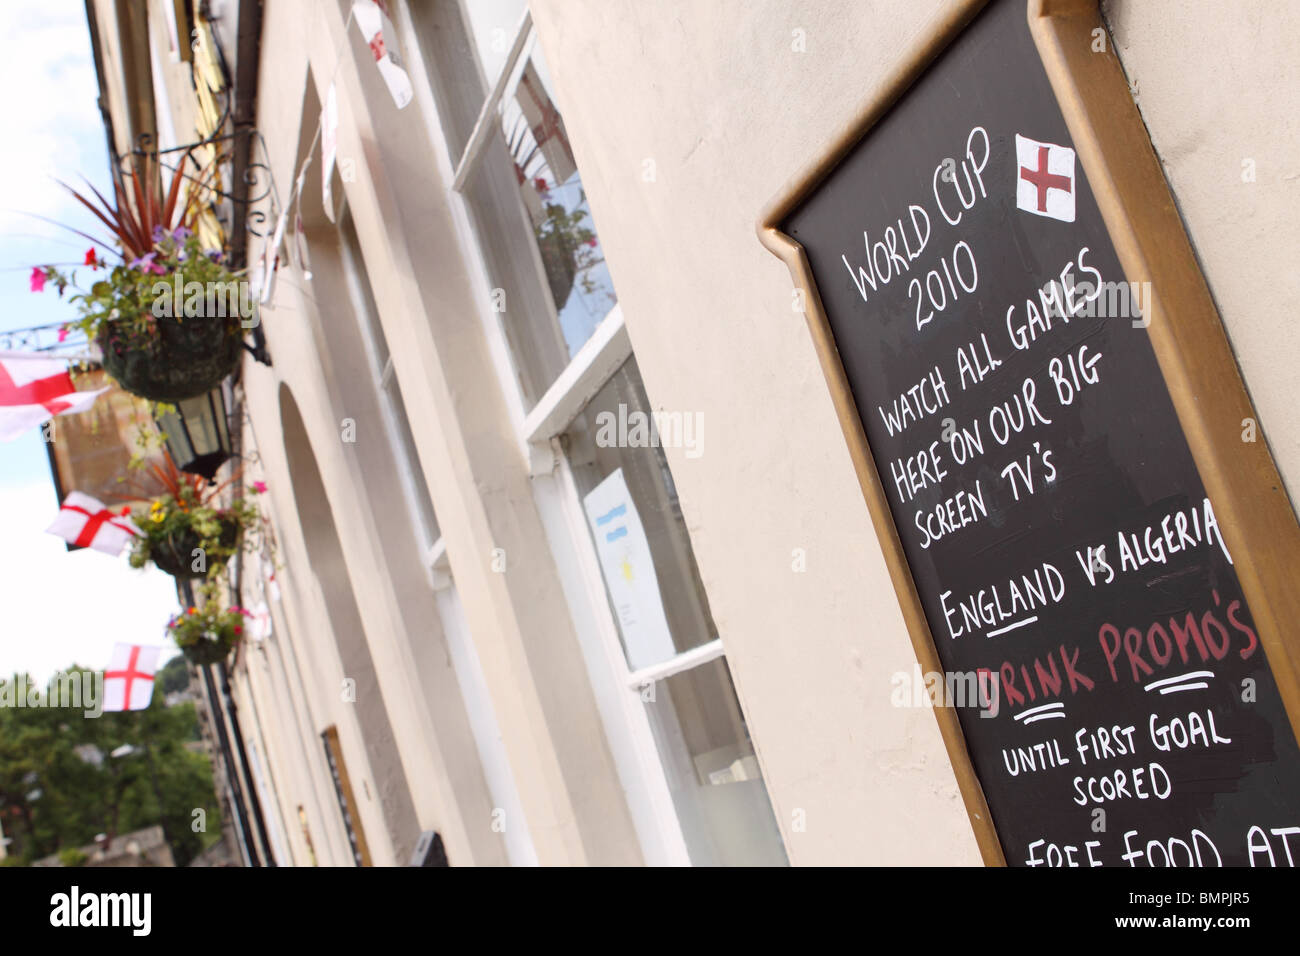 World Cup 2010 pub in Bath England advertising England football games on large screen TV - Stock Image